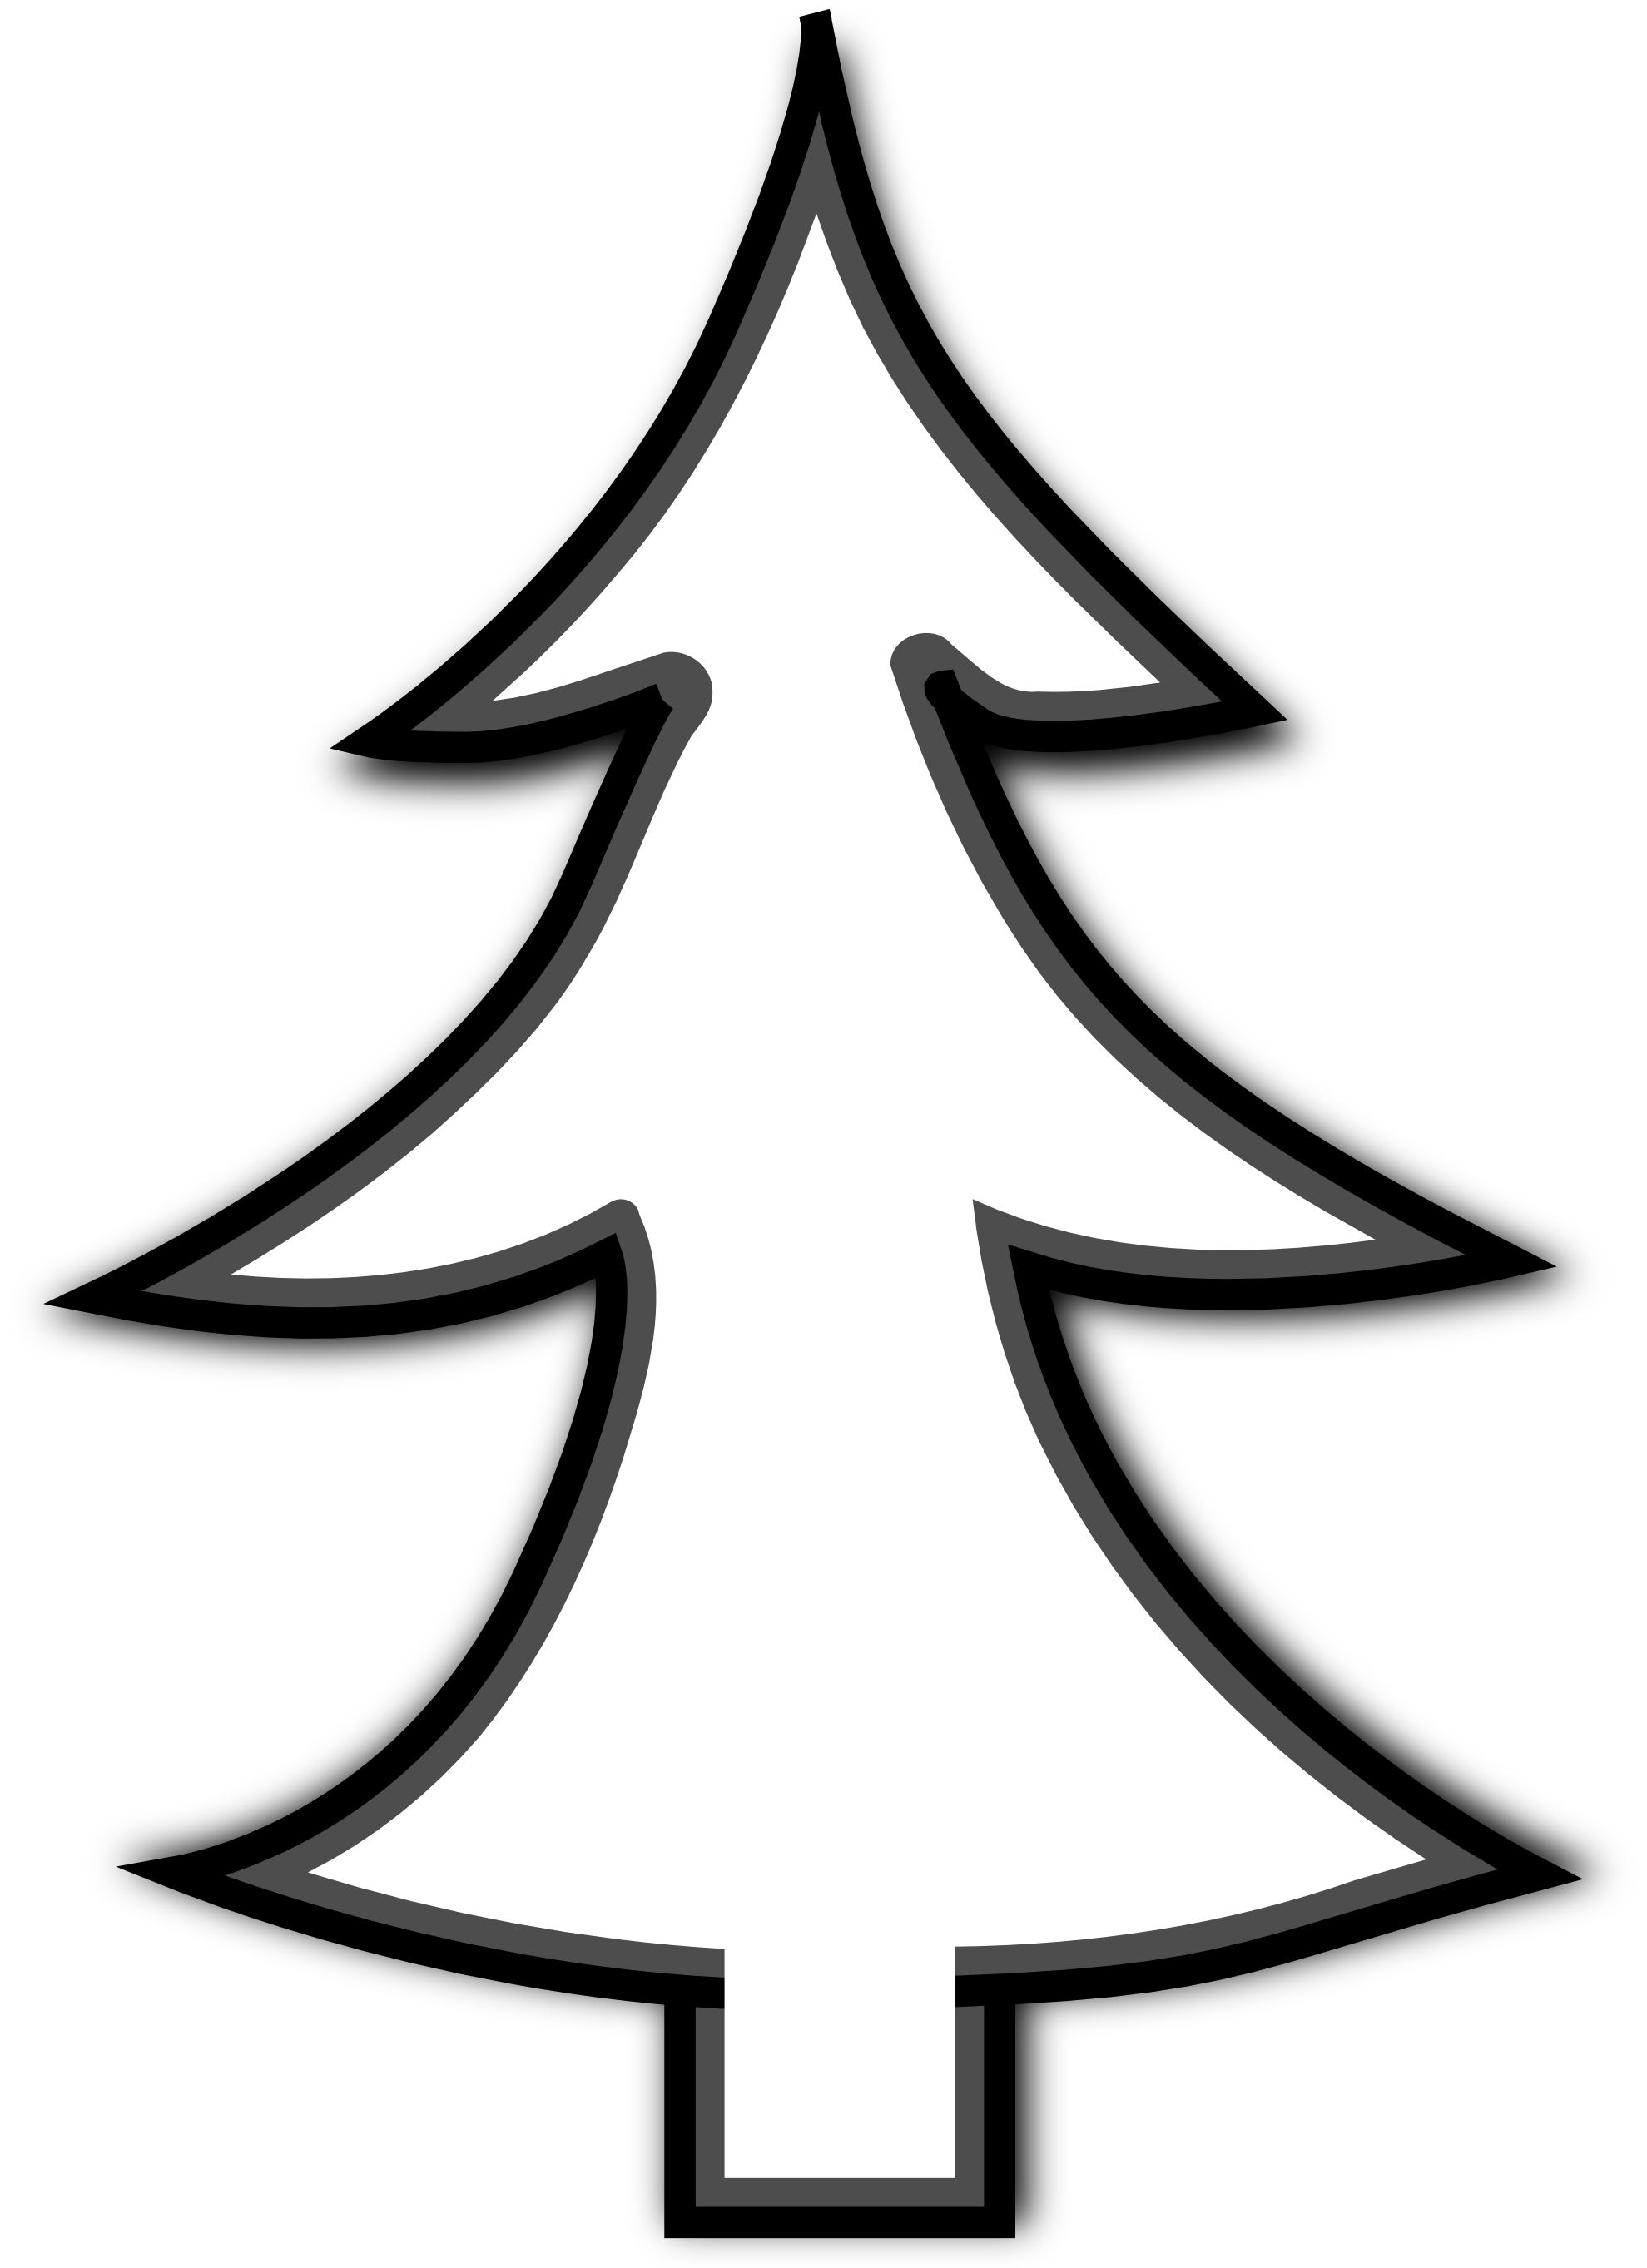 Christmas Tree Clipart Black And White | Clipart Panda - Free Clipart ...